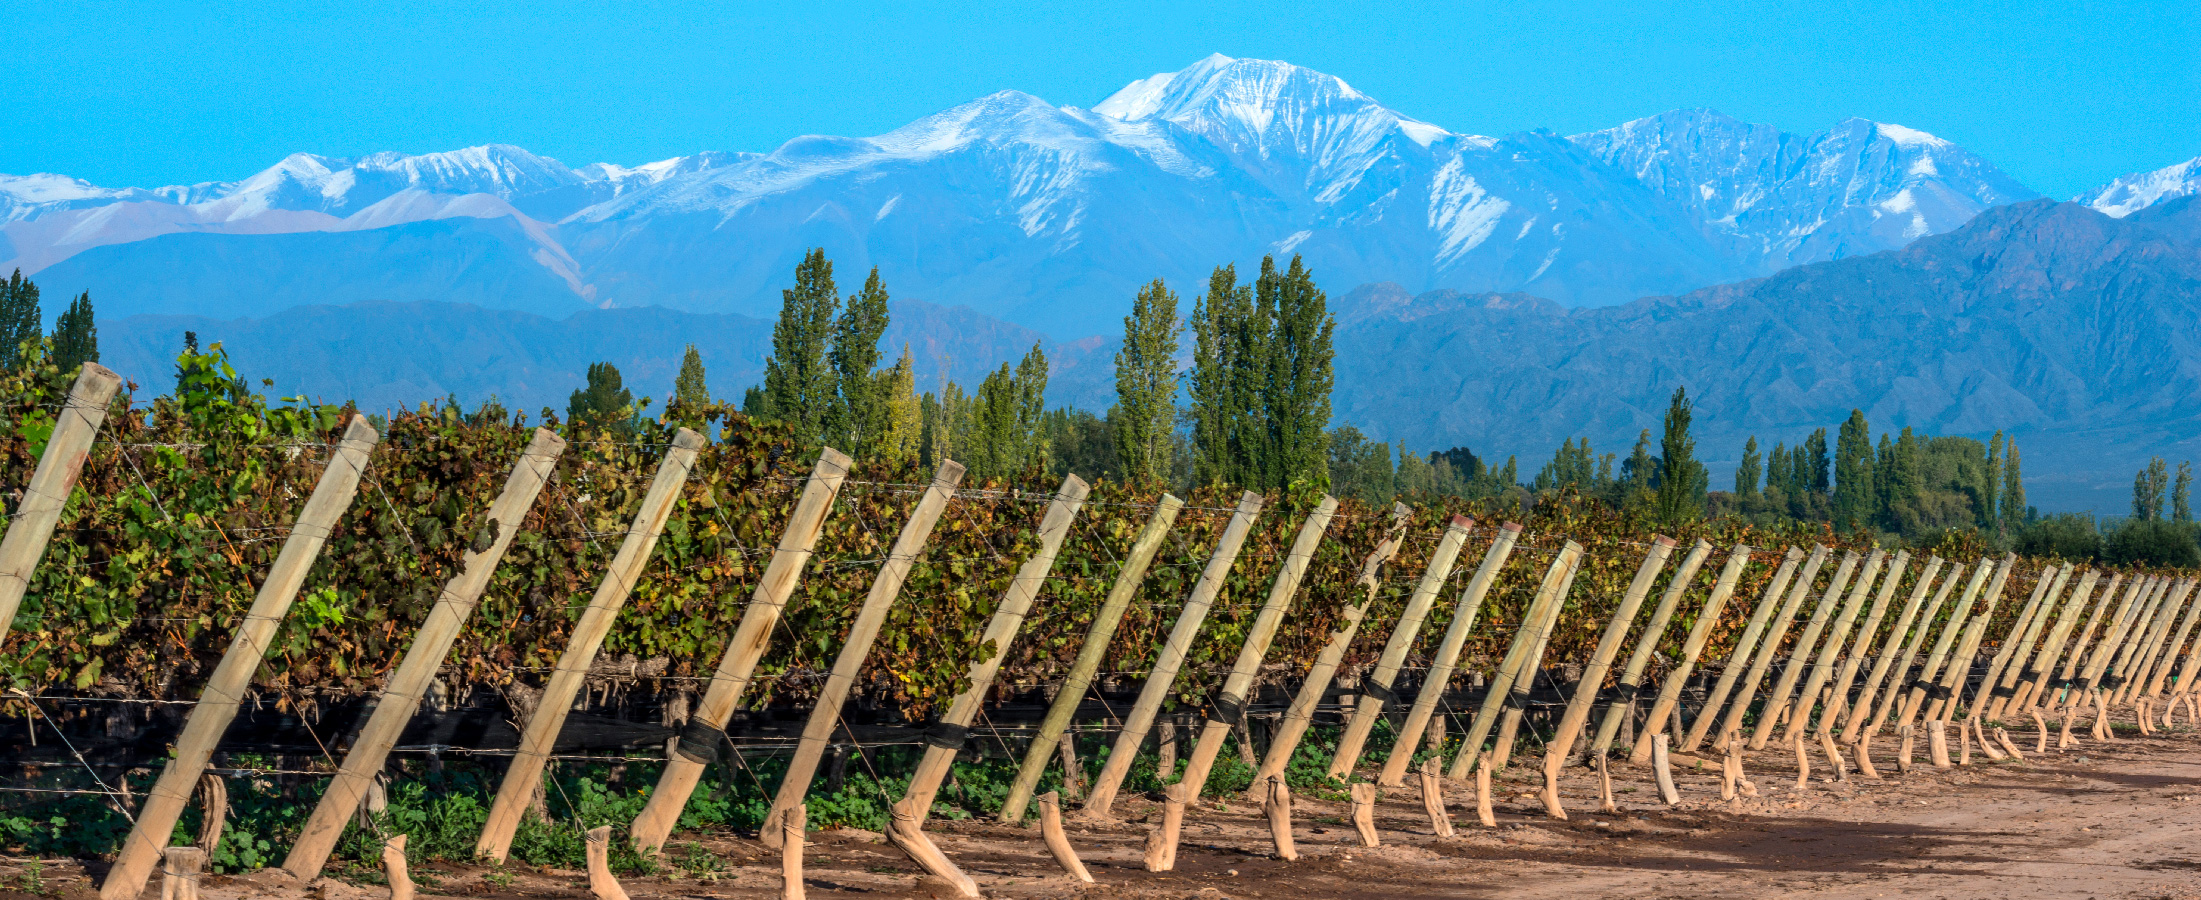 visit the Vineyards of Mendoza, Argentina